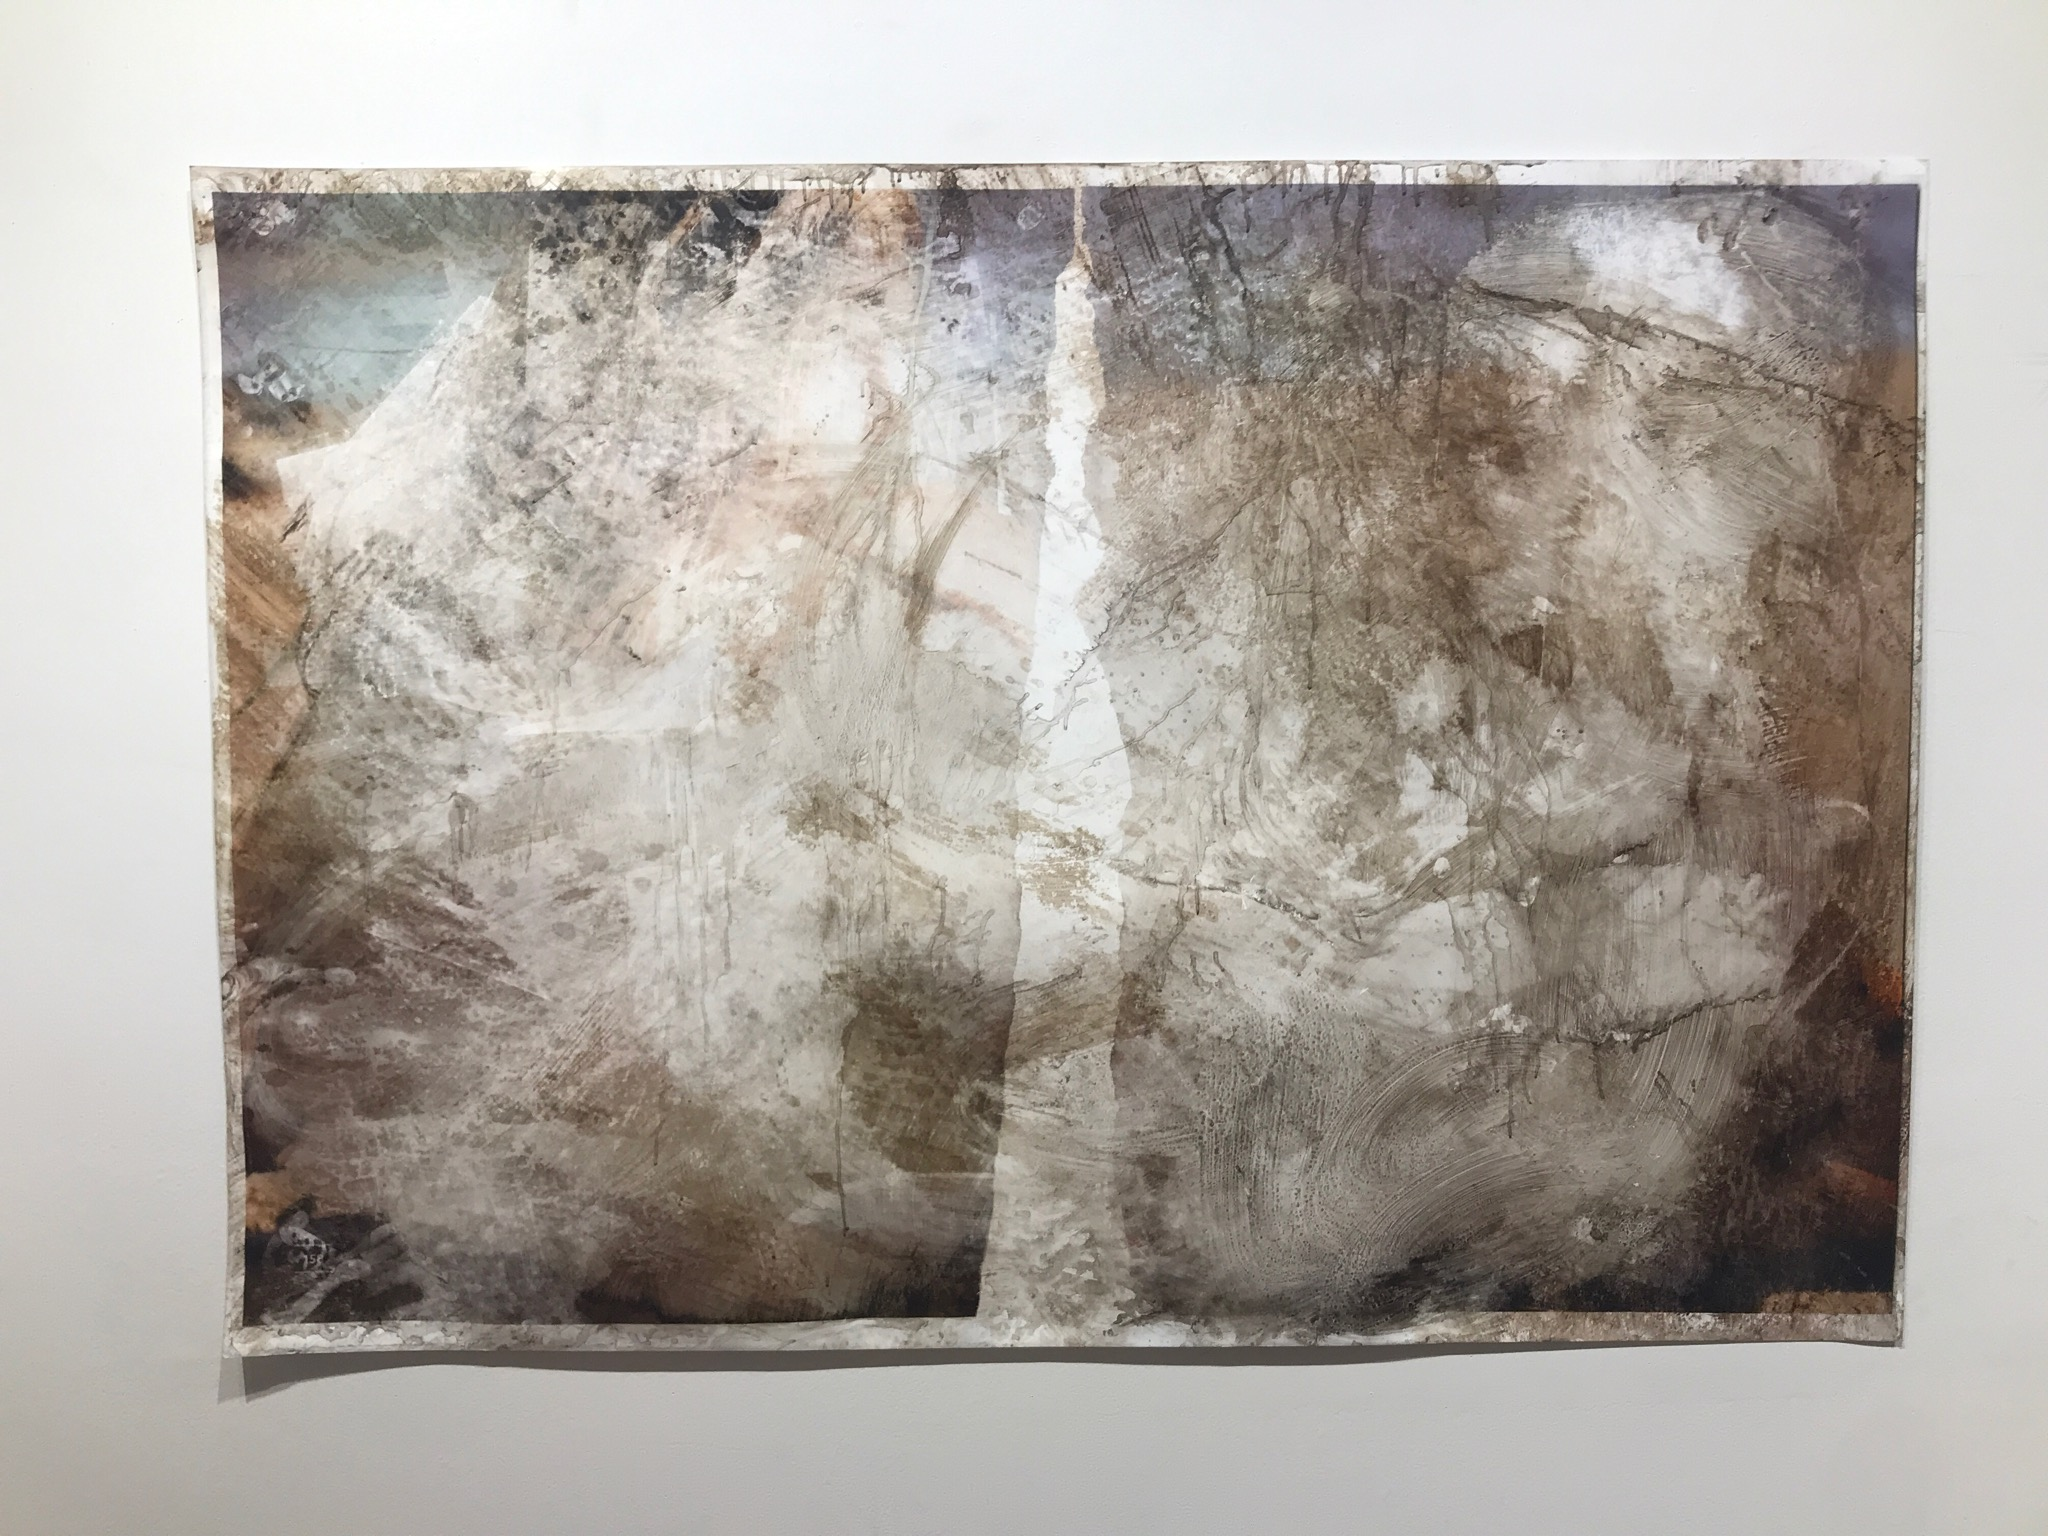 158   2018  36 x 52 in.  Citra solv on magazine, bleach, window cleaner, nail polish remover, and pine sol on photo paper